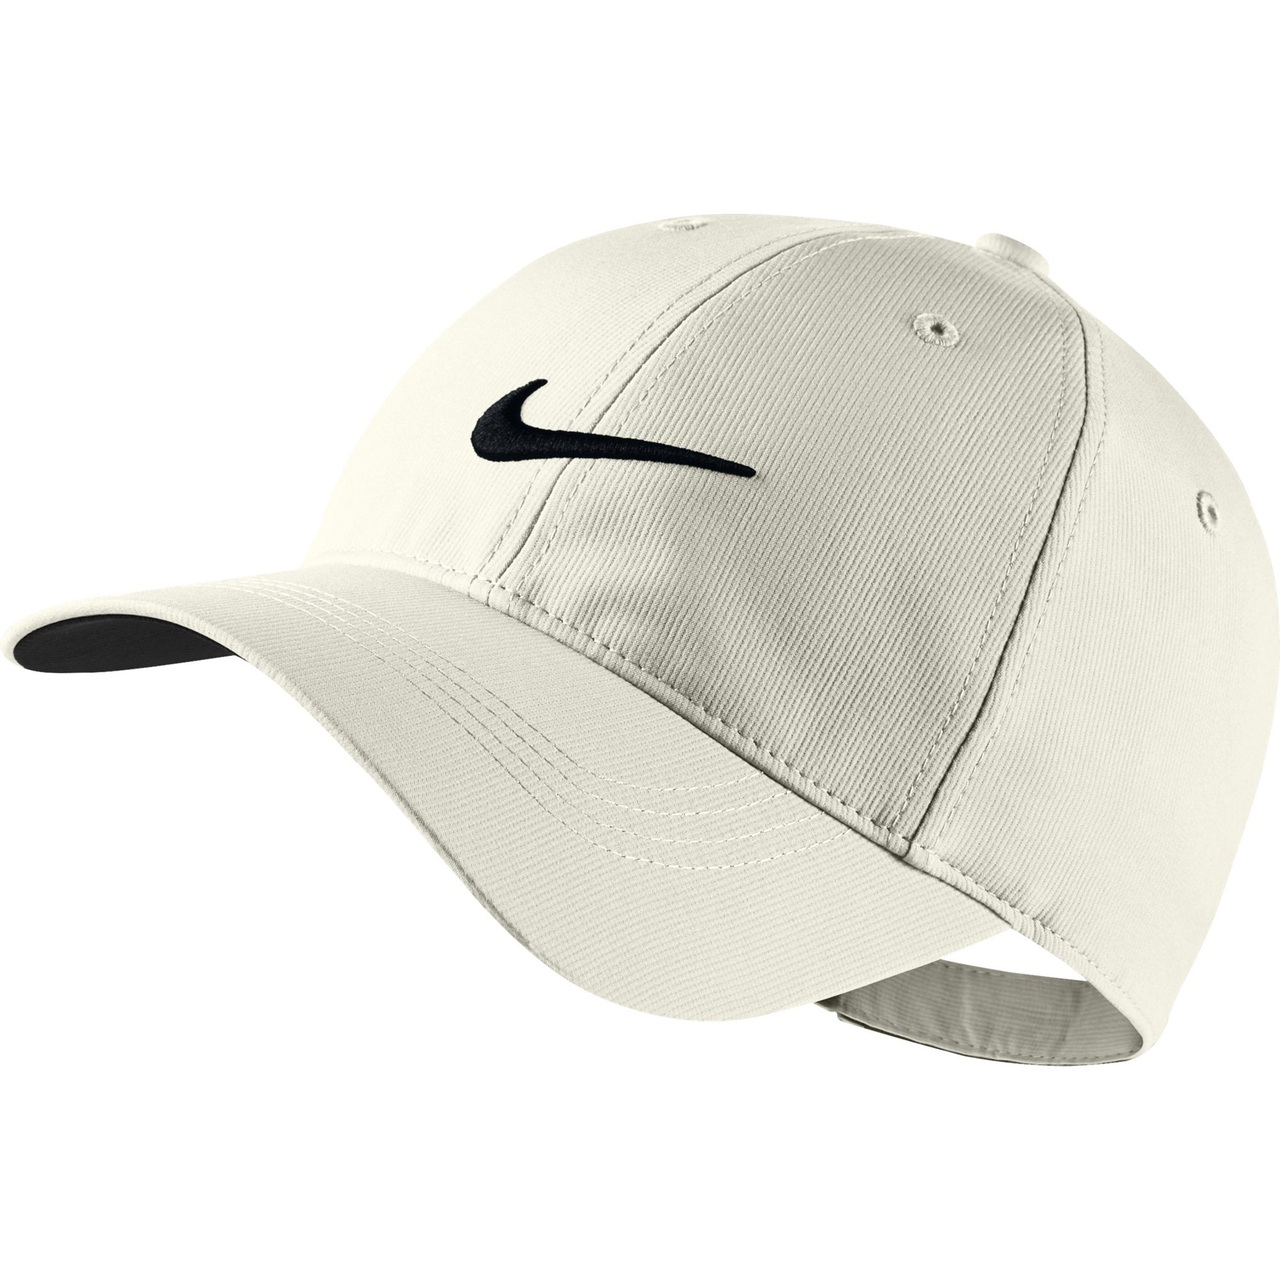 28b0e7f9c8be6 Nike Golf Legacy 91 Tech Adjustable Hat (Khaki Black) - Light Bone Black